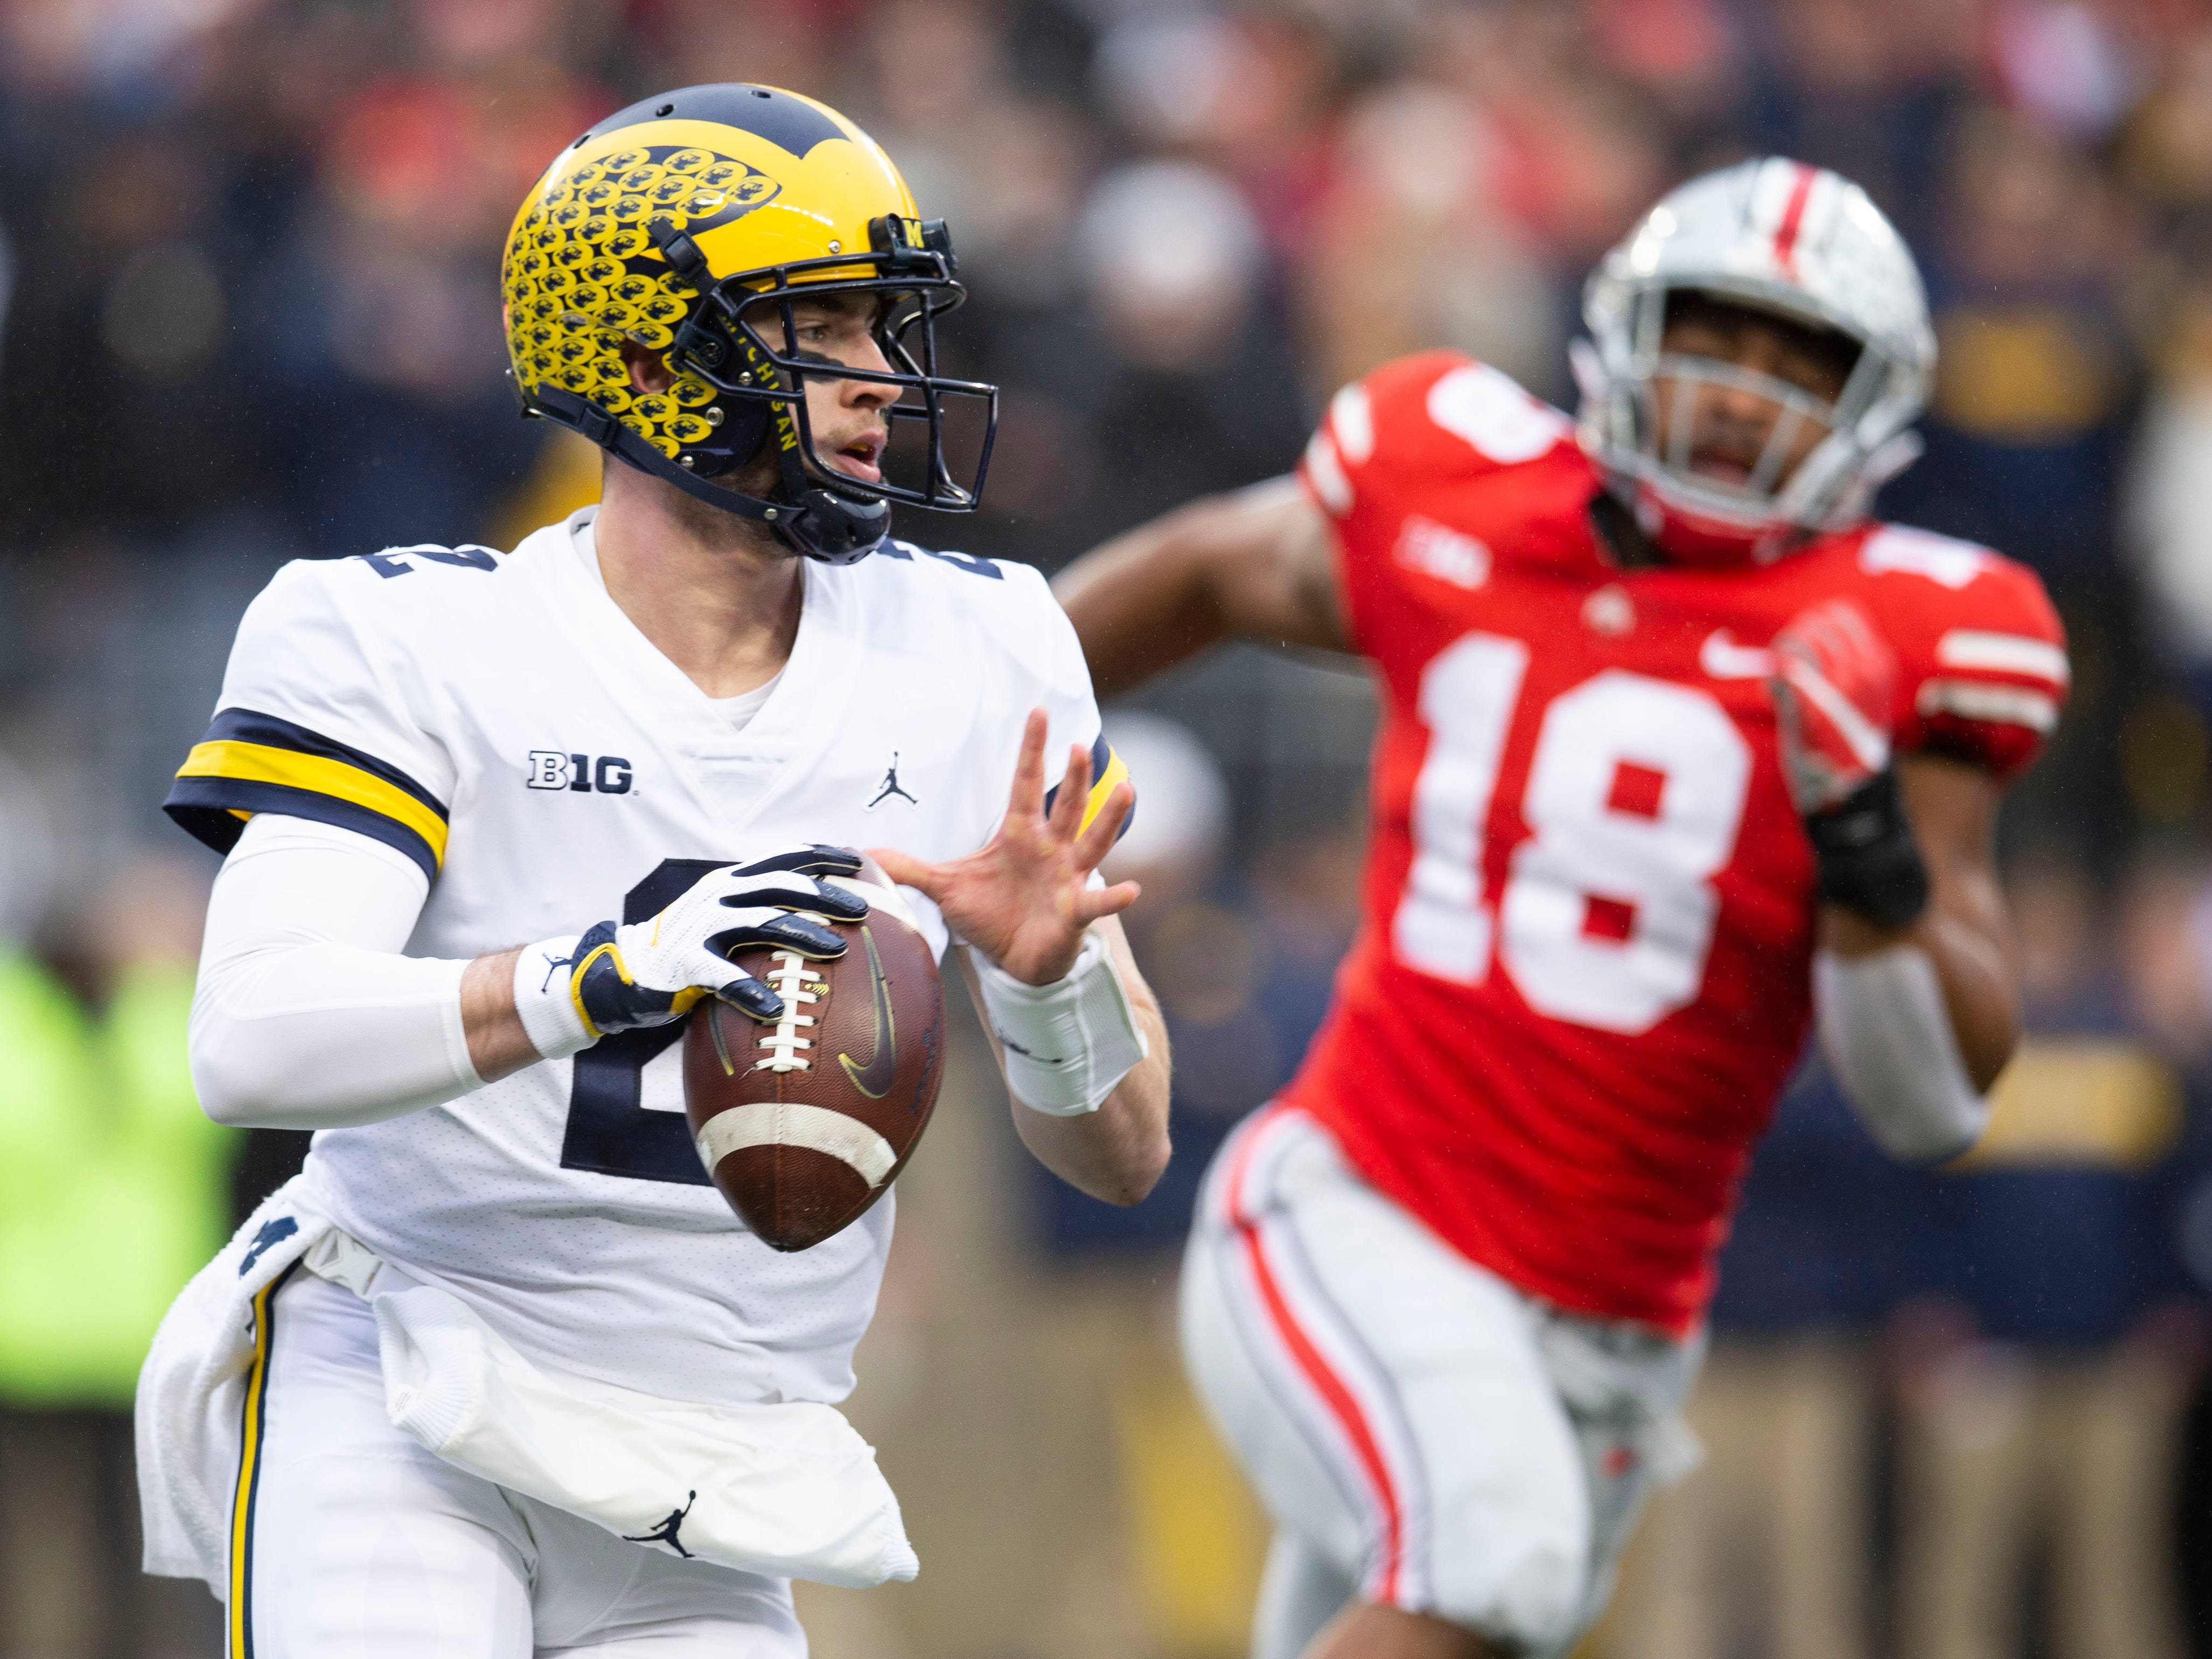 Michigan Wolverines quarterback Shea Patterson (2) looks for an open receiver under pressure from Ohio State Buckeyes defensive end Jonathon Cooper (18) at Ohio Stadium.